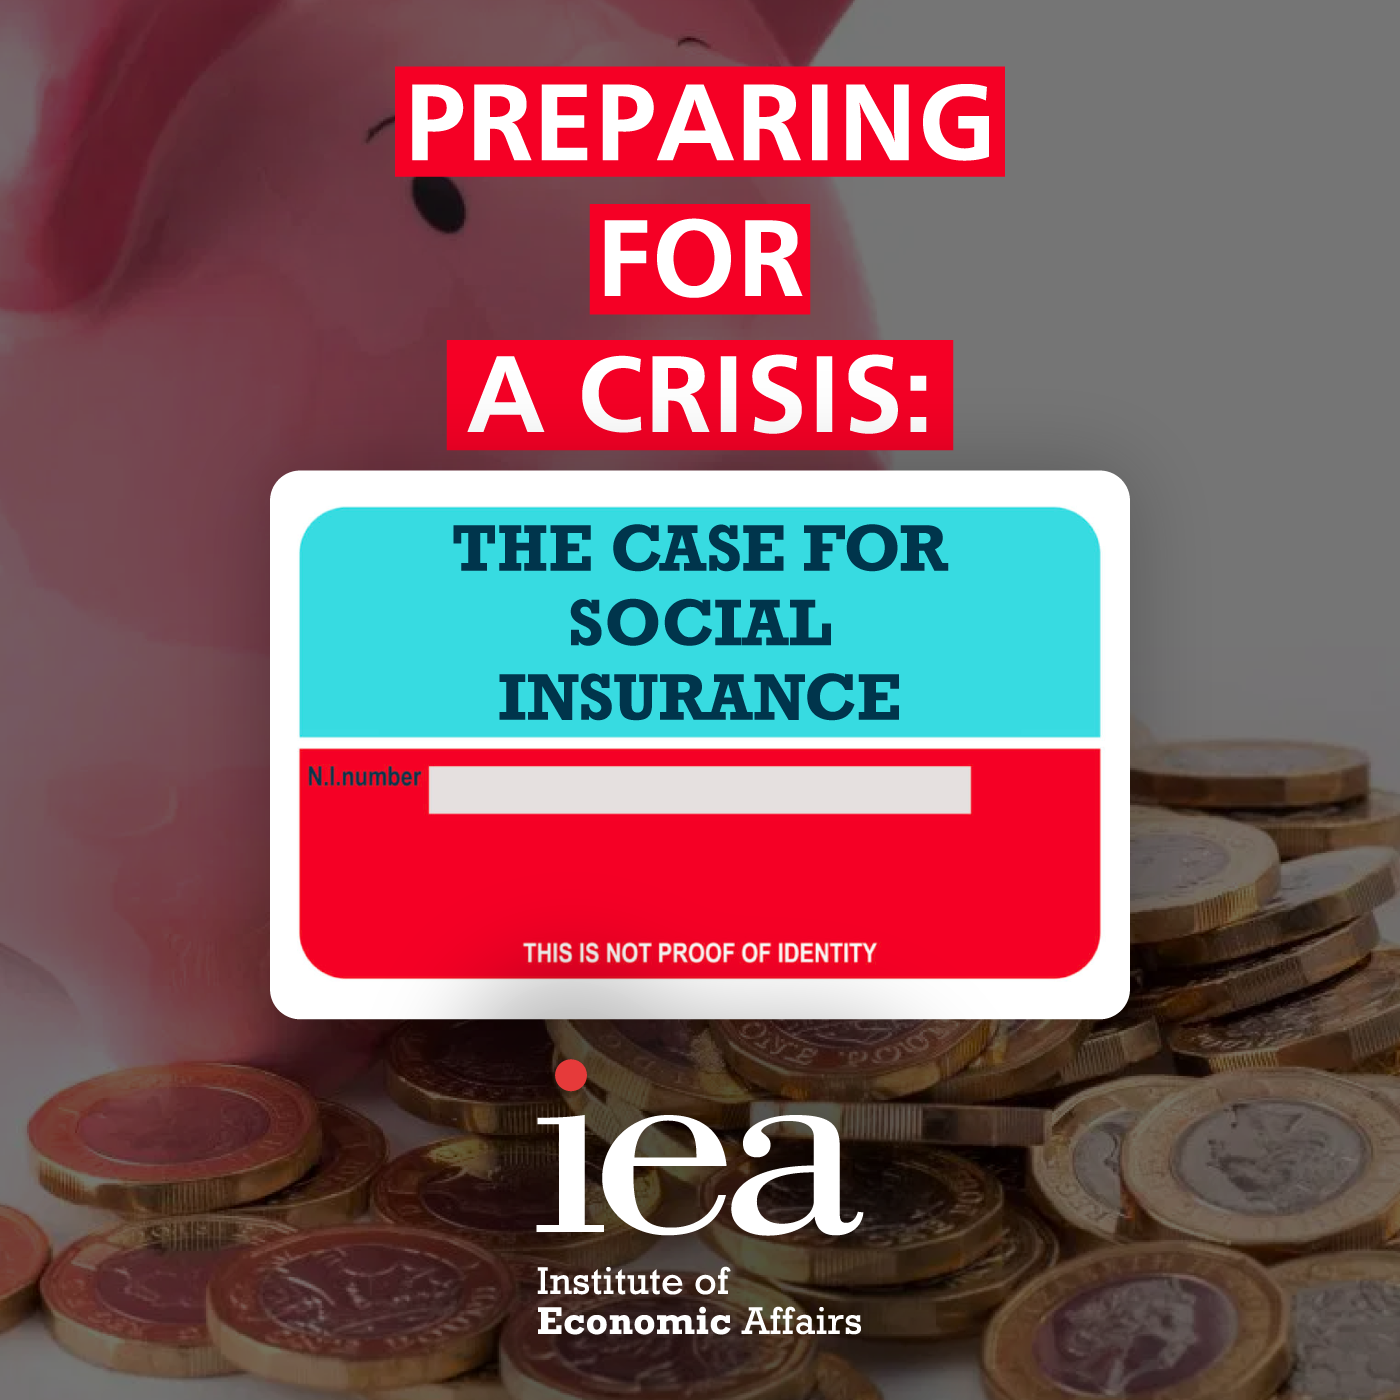 Preparing for a crisis: The case for social insurance